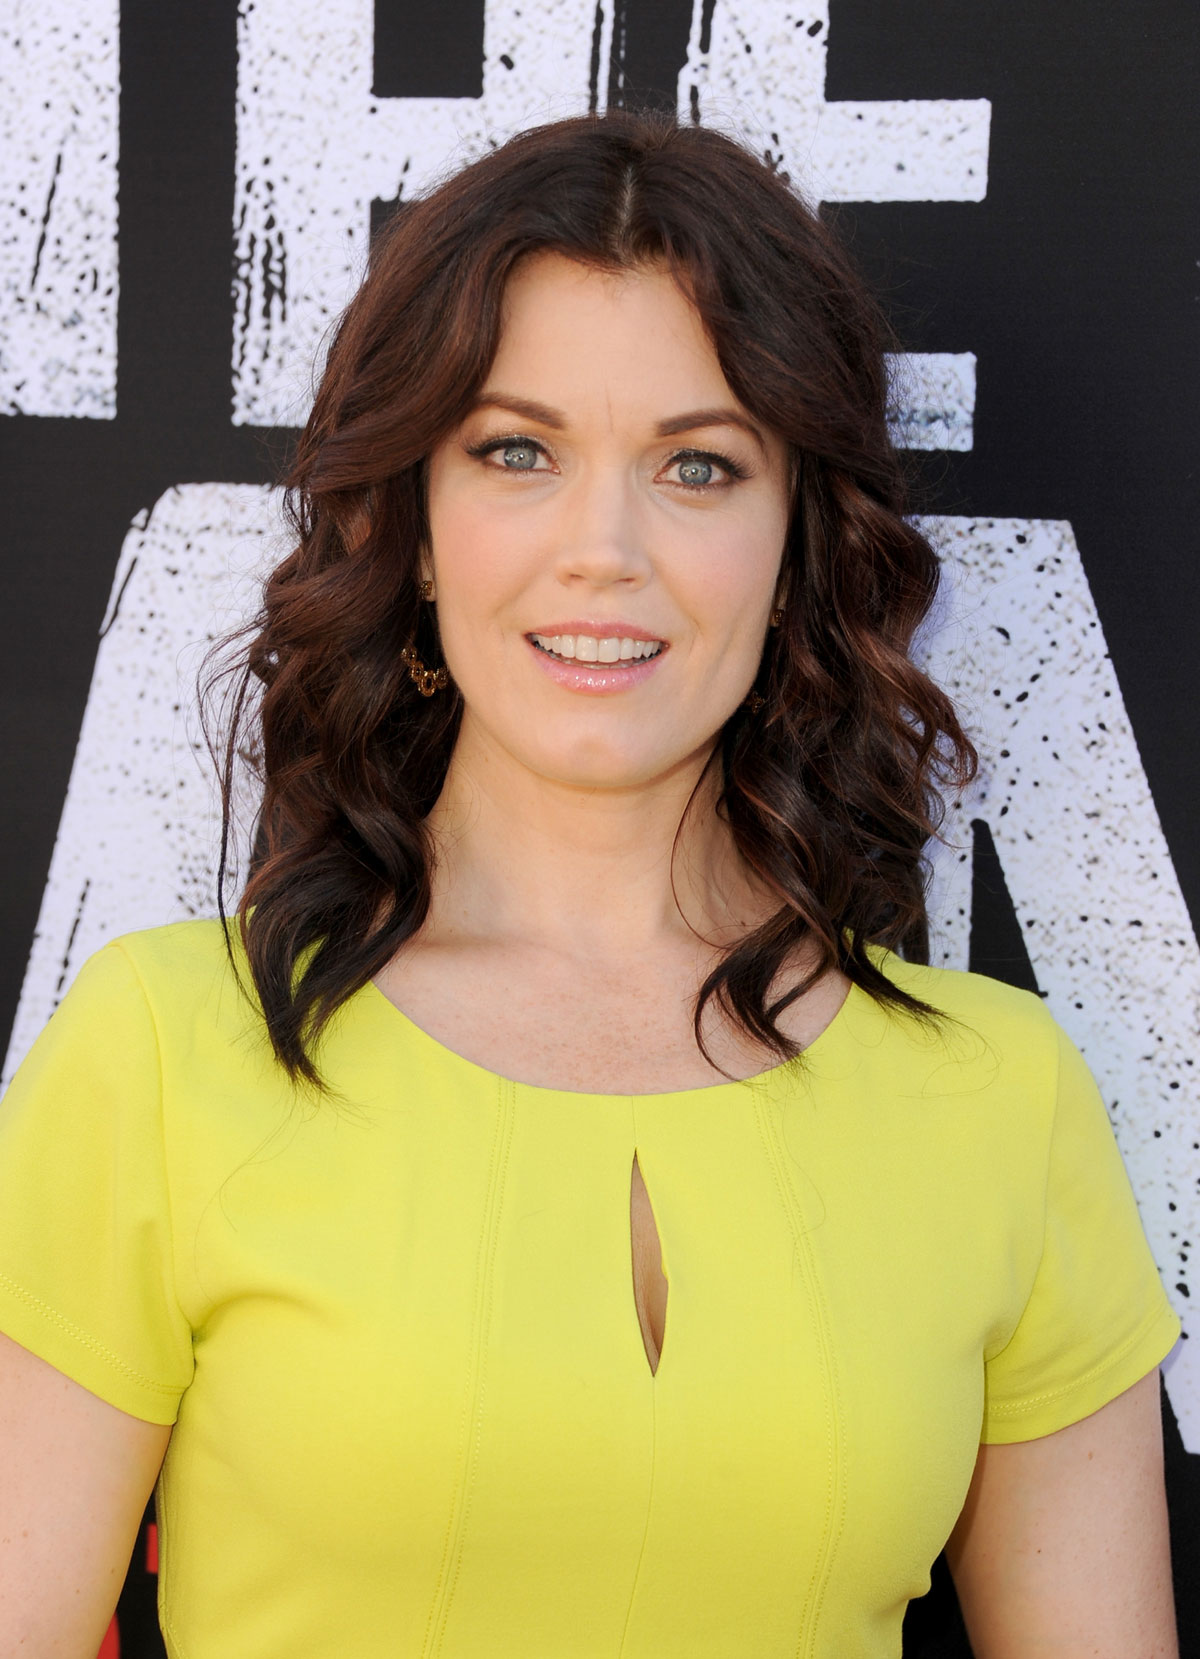 bellamy young supernaturalbellamy young listal, bellamy young height, bellamy young supernatural, bellamy young relationship, bellamy young birthday, bellamy young gallery, bellamy young site, bellamy young imdb, bellamy young baby, bellamy young husband, bellamy young hot photos, bellamy young fan site, bellamy young salary, bellamy young photos, bellamy young, bellamy young married, bellamy young pregnant, bellamy young grey anatomy, bellamy young instagram, bellamy young singing